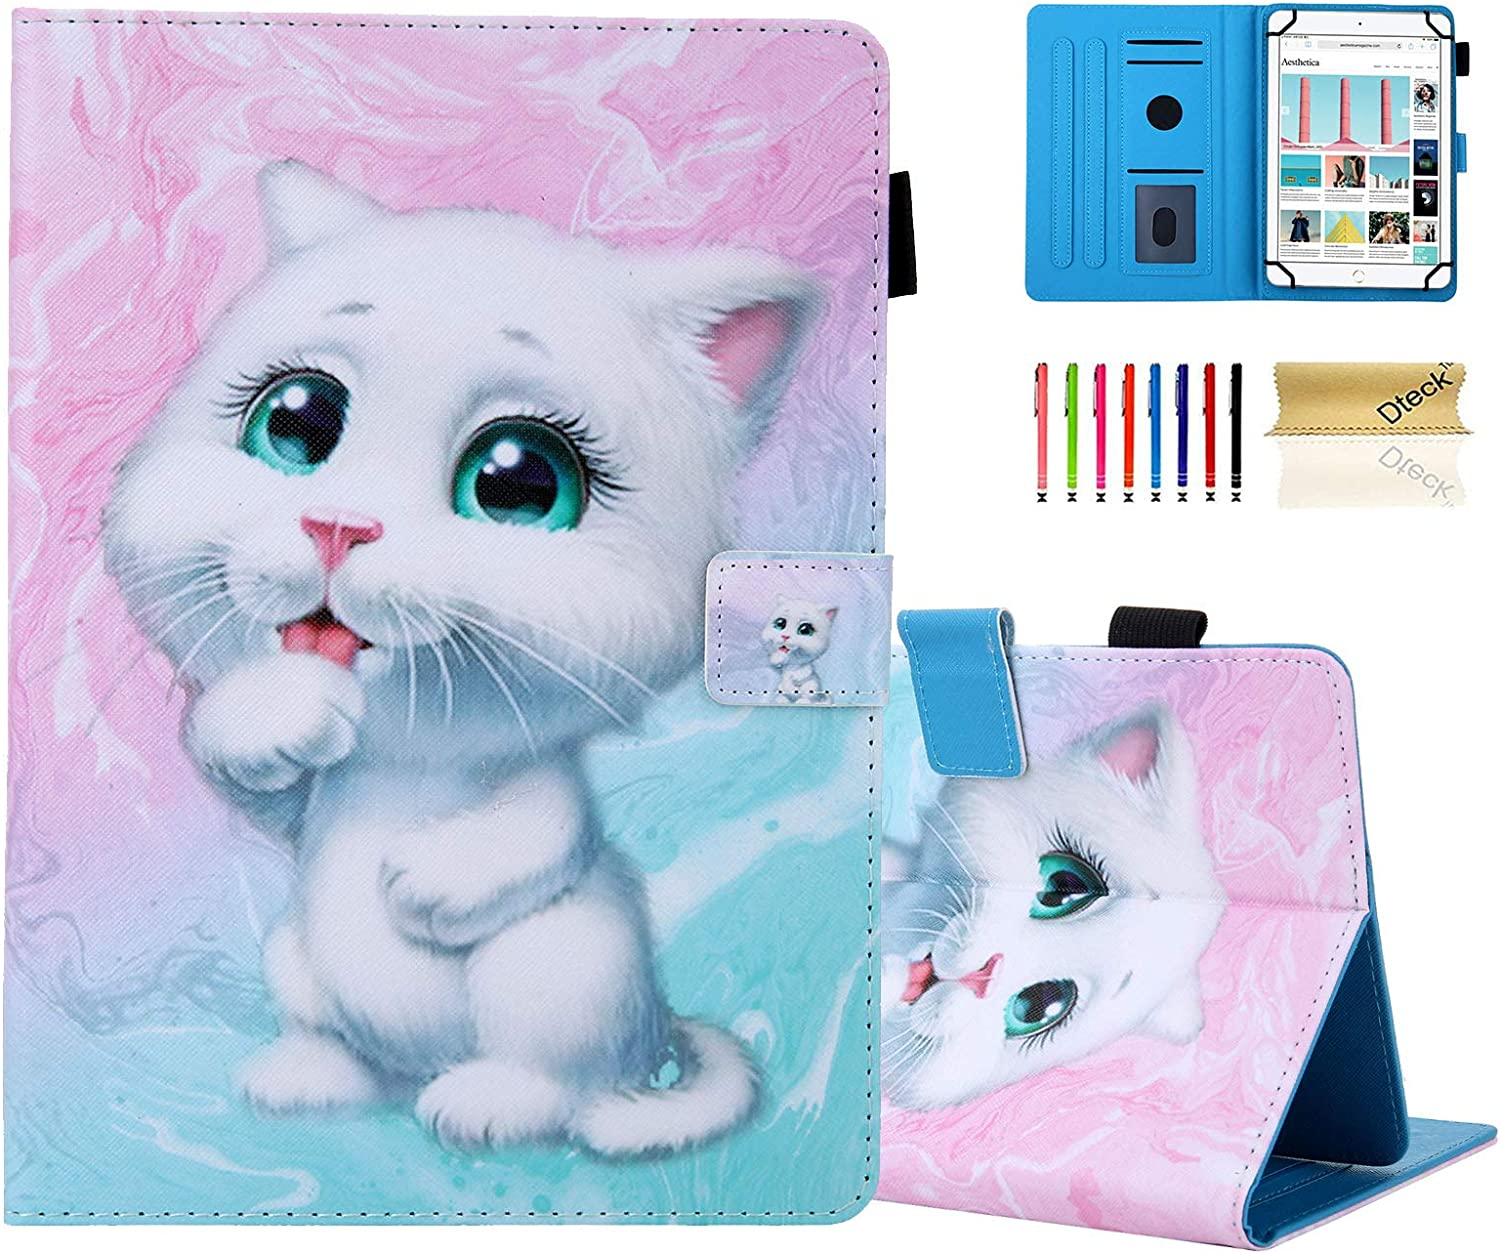 "9.7 Inch Universal Tablet Case - Dteck Protective Leather Wallet Flip Case with Card Slots for iPad 9.7"" 10.2"" 10.5"" /Samsung 9.6"" 10.1"" 10.5"" / Android Windows 10 Inch/Lenovo 10.1 Tablet (White Cat)"